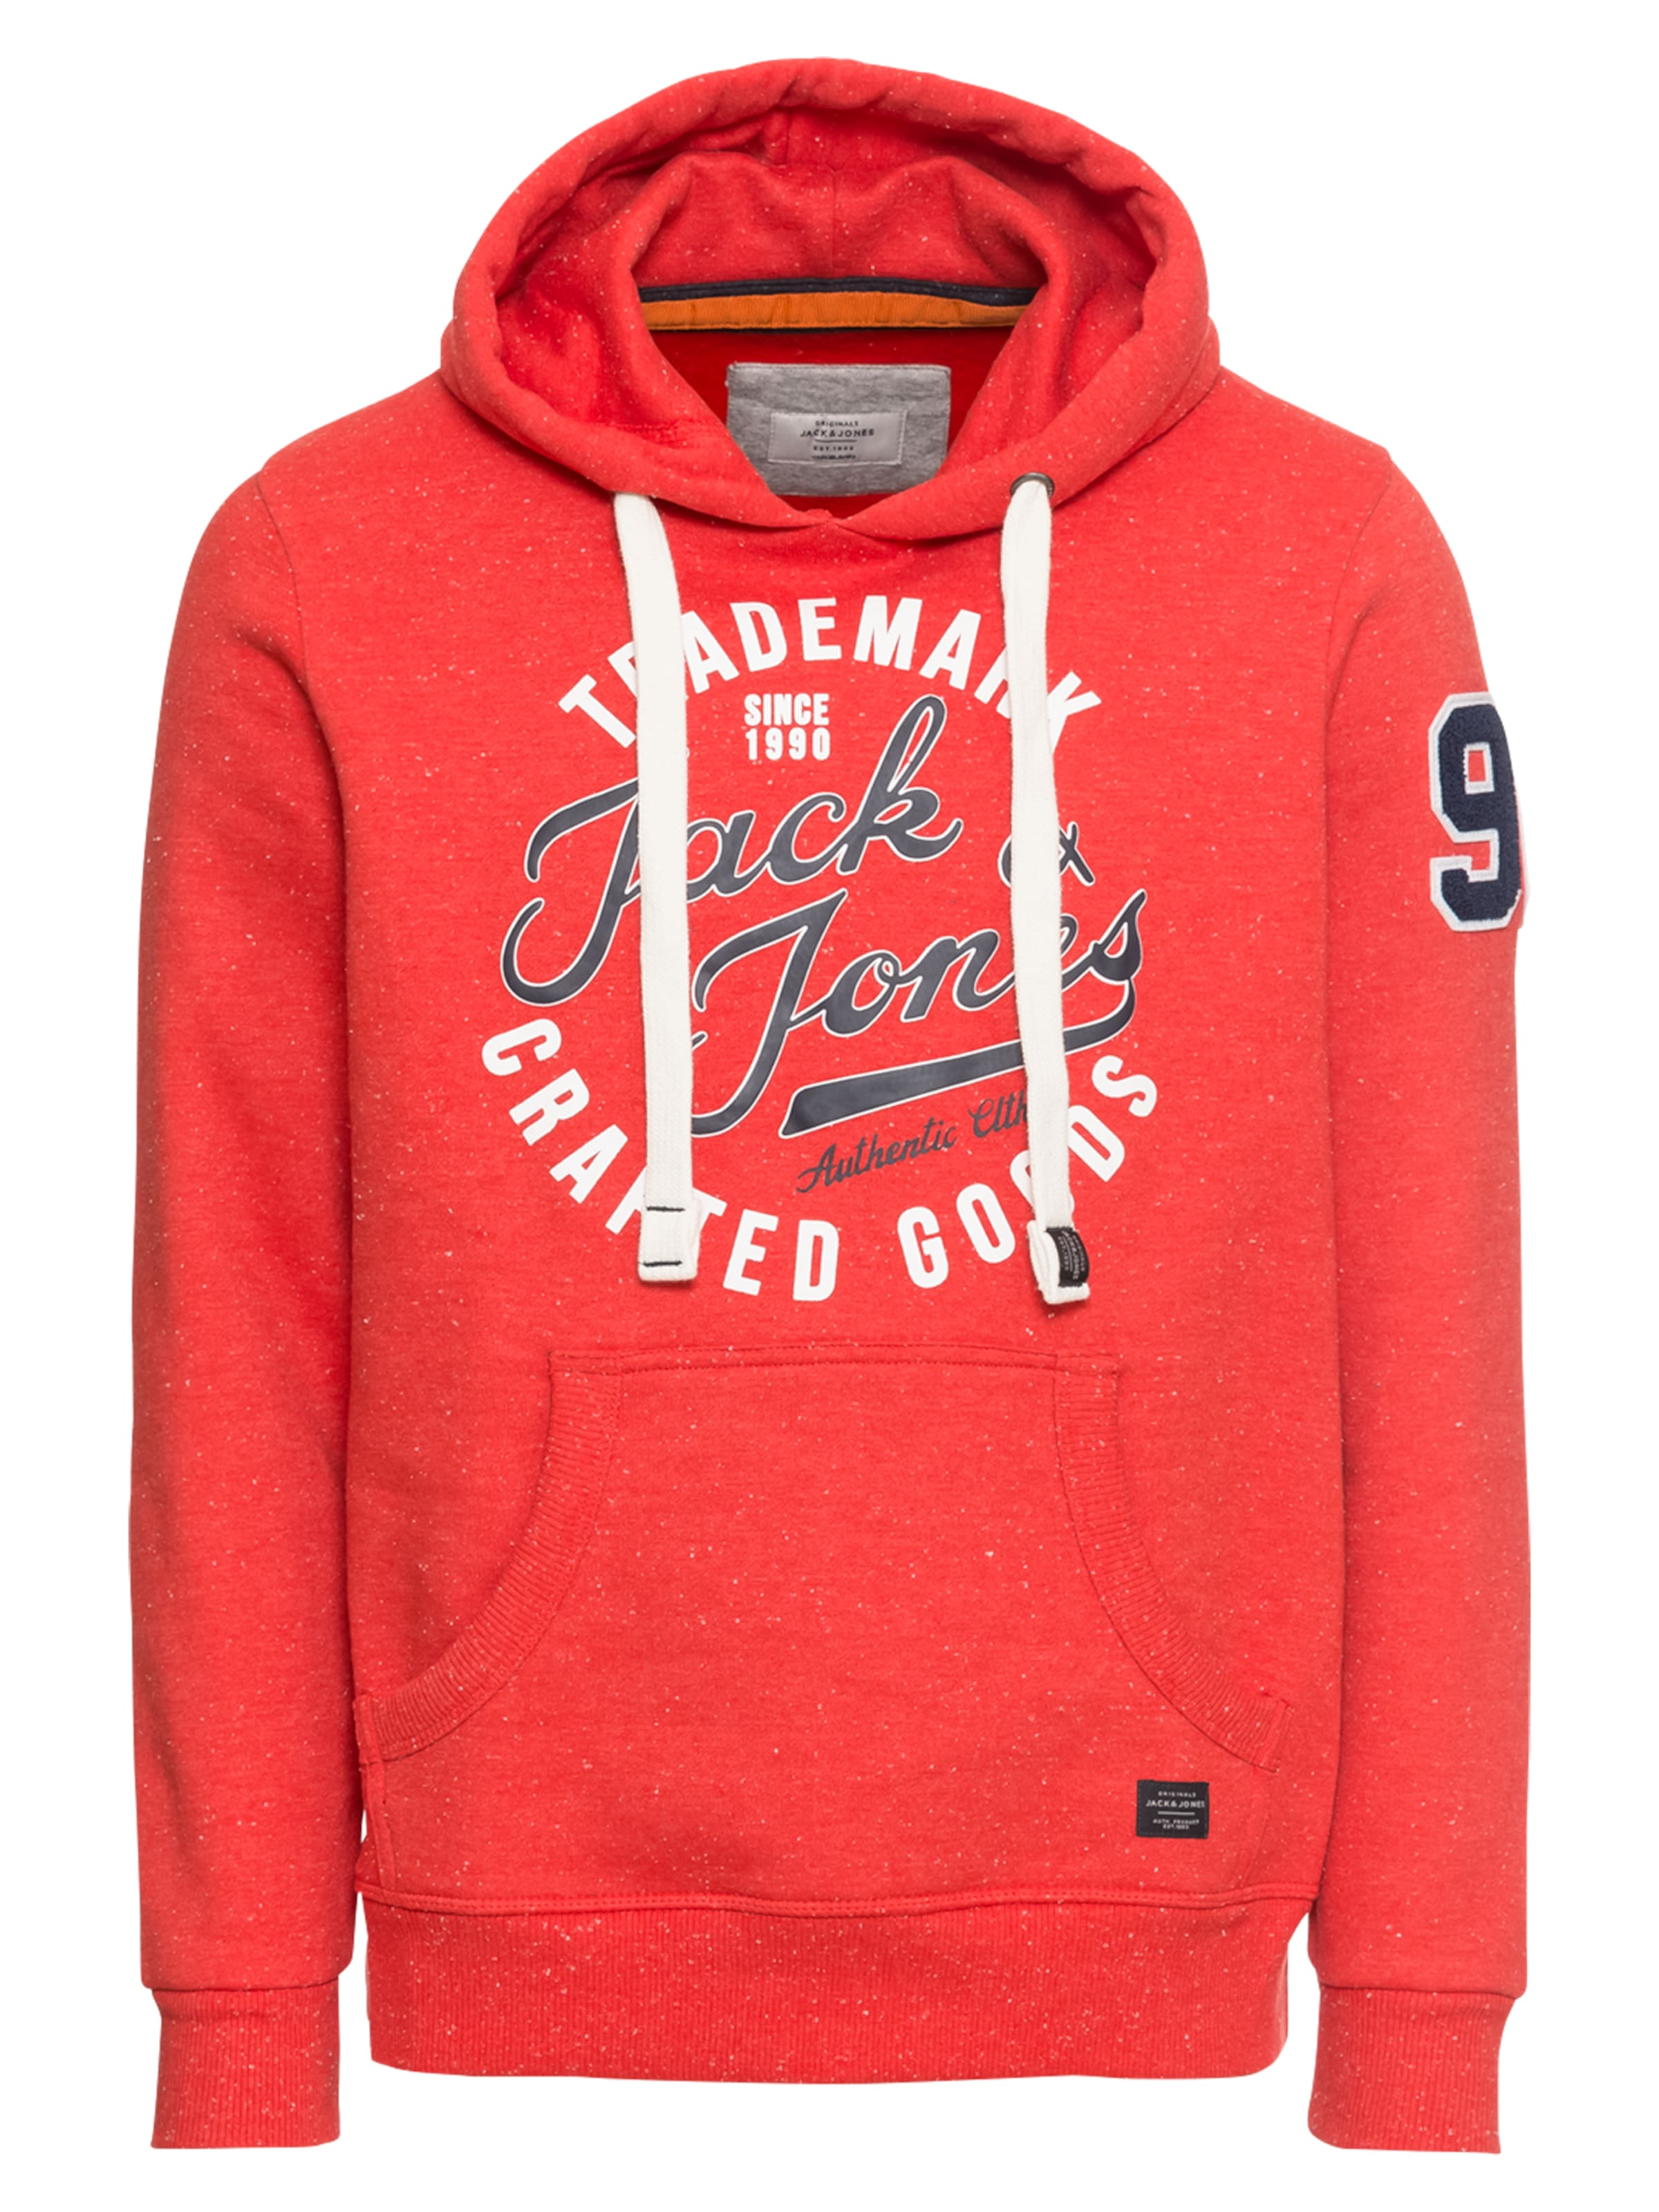 Jackamp; shirt FoncéRouge Sweat 'jorchamps' Blanc Bleu Jones En TkZOPXiu